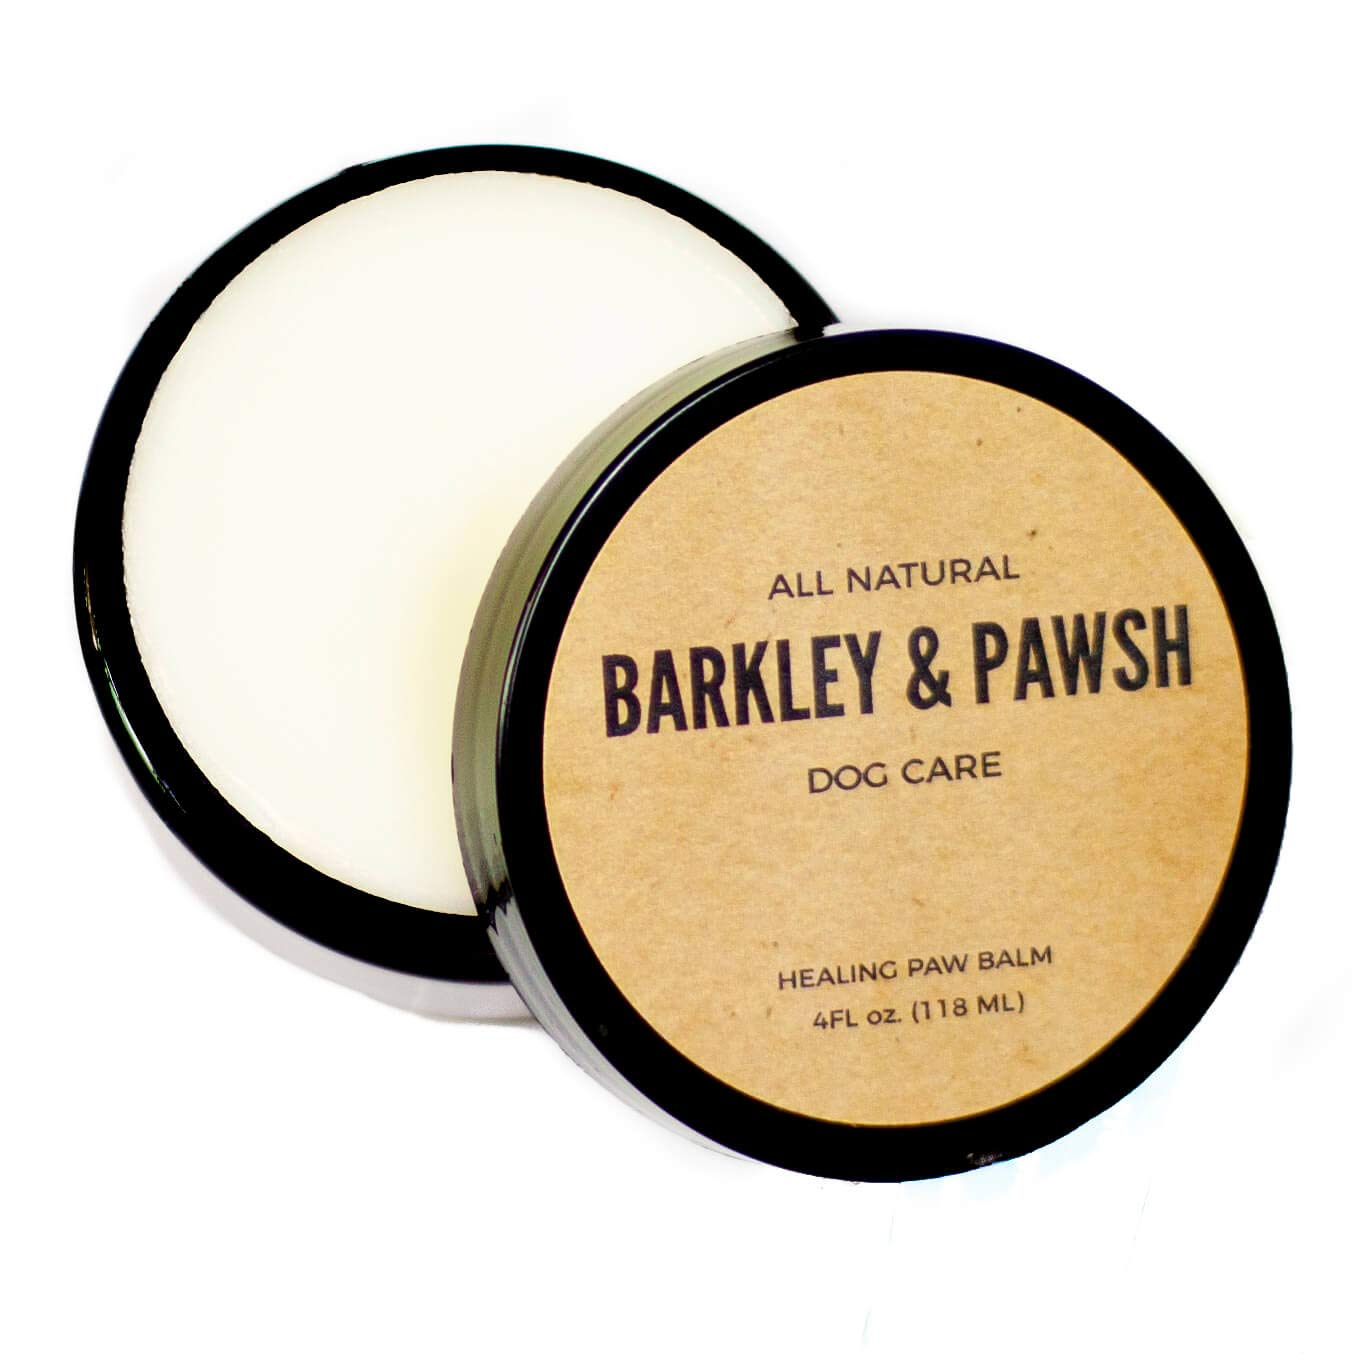 100% Natural Dog Paw Ointment for Dry, Cracked, Flaky Pads | 4 fl oz, Puppy Safe Balm | Cruelty and Chemical Free | Made in The USA (4oz) by Barkley and Pawsh